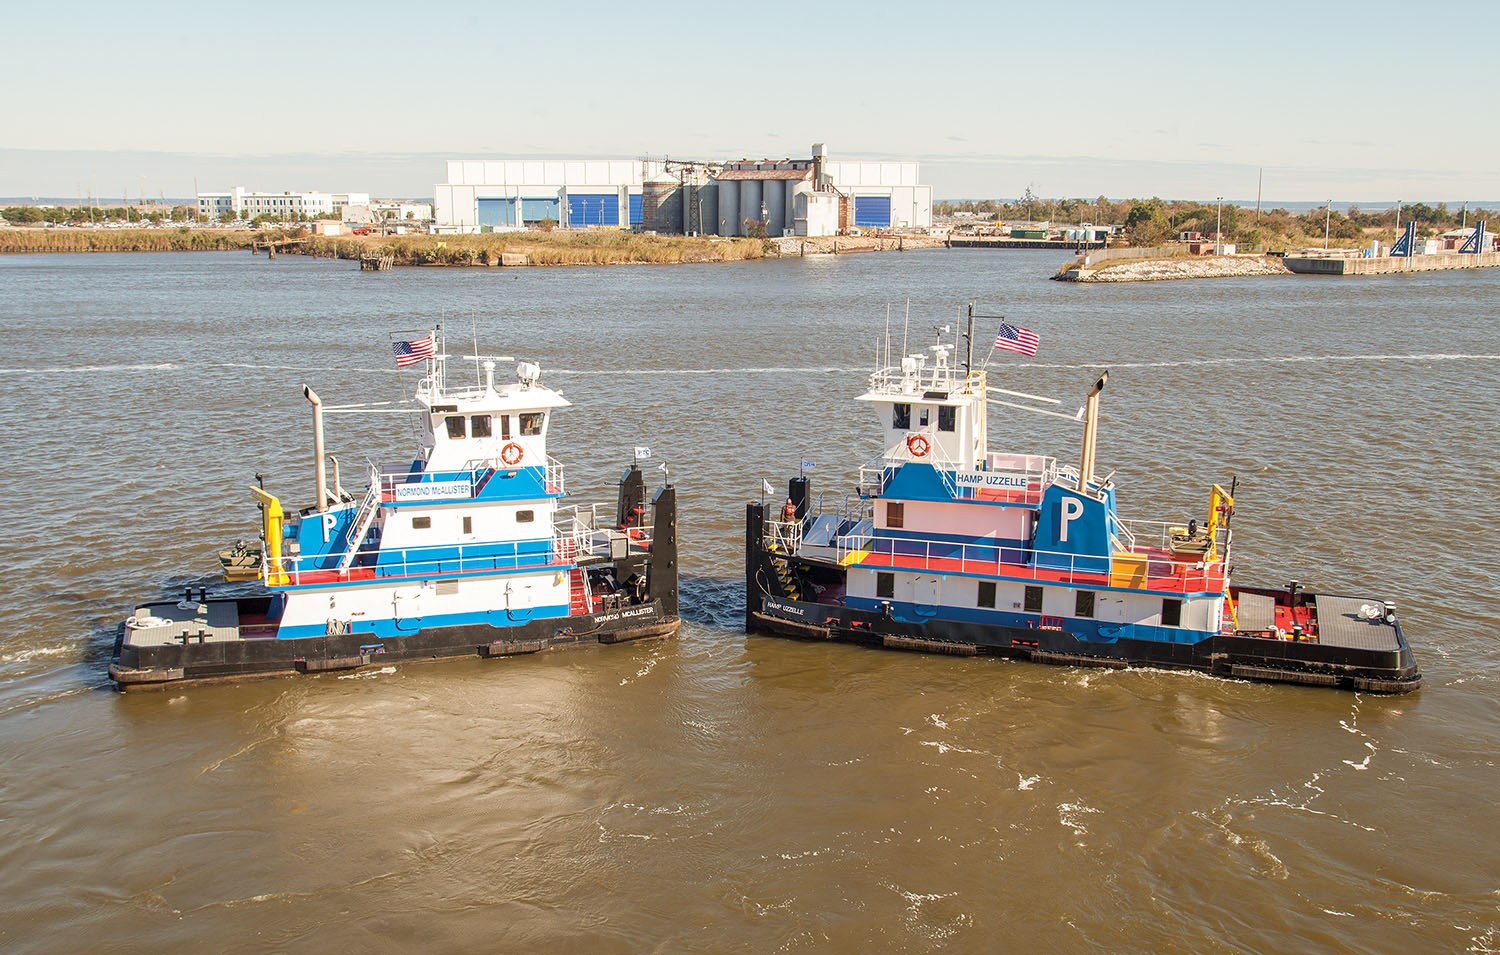 Parker Towing Christens Two Vessels In Mobile, Ala.